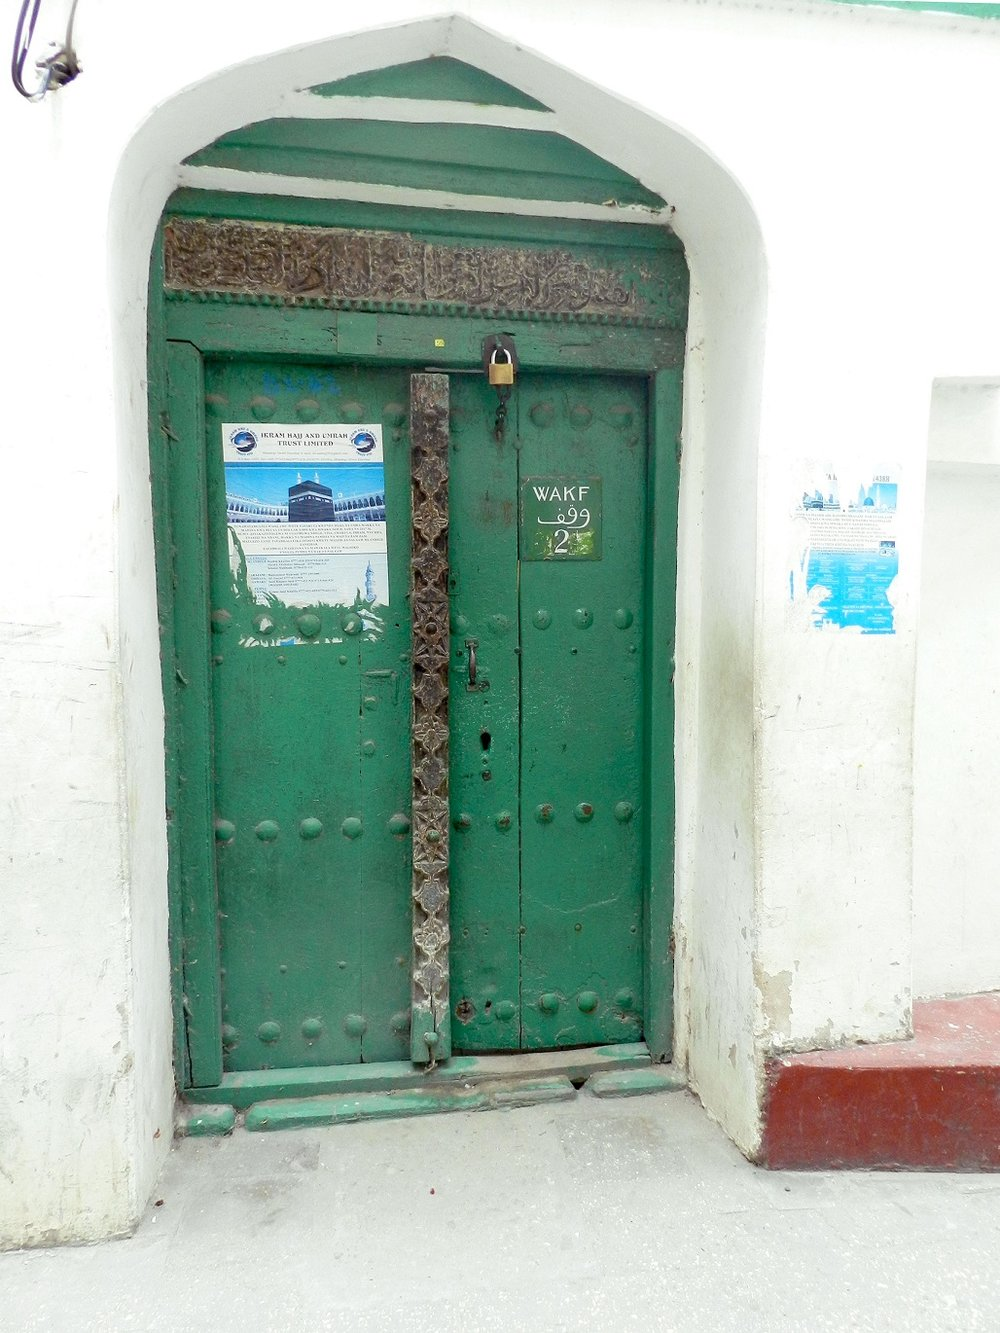 A Green Arab-style door with Qur'an verses inscribed above it